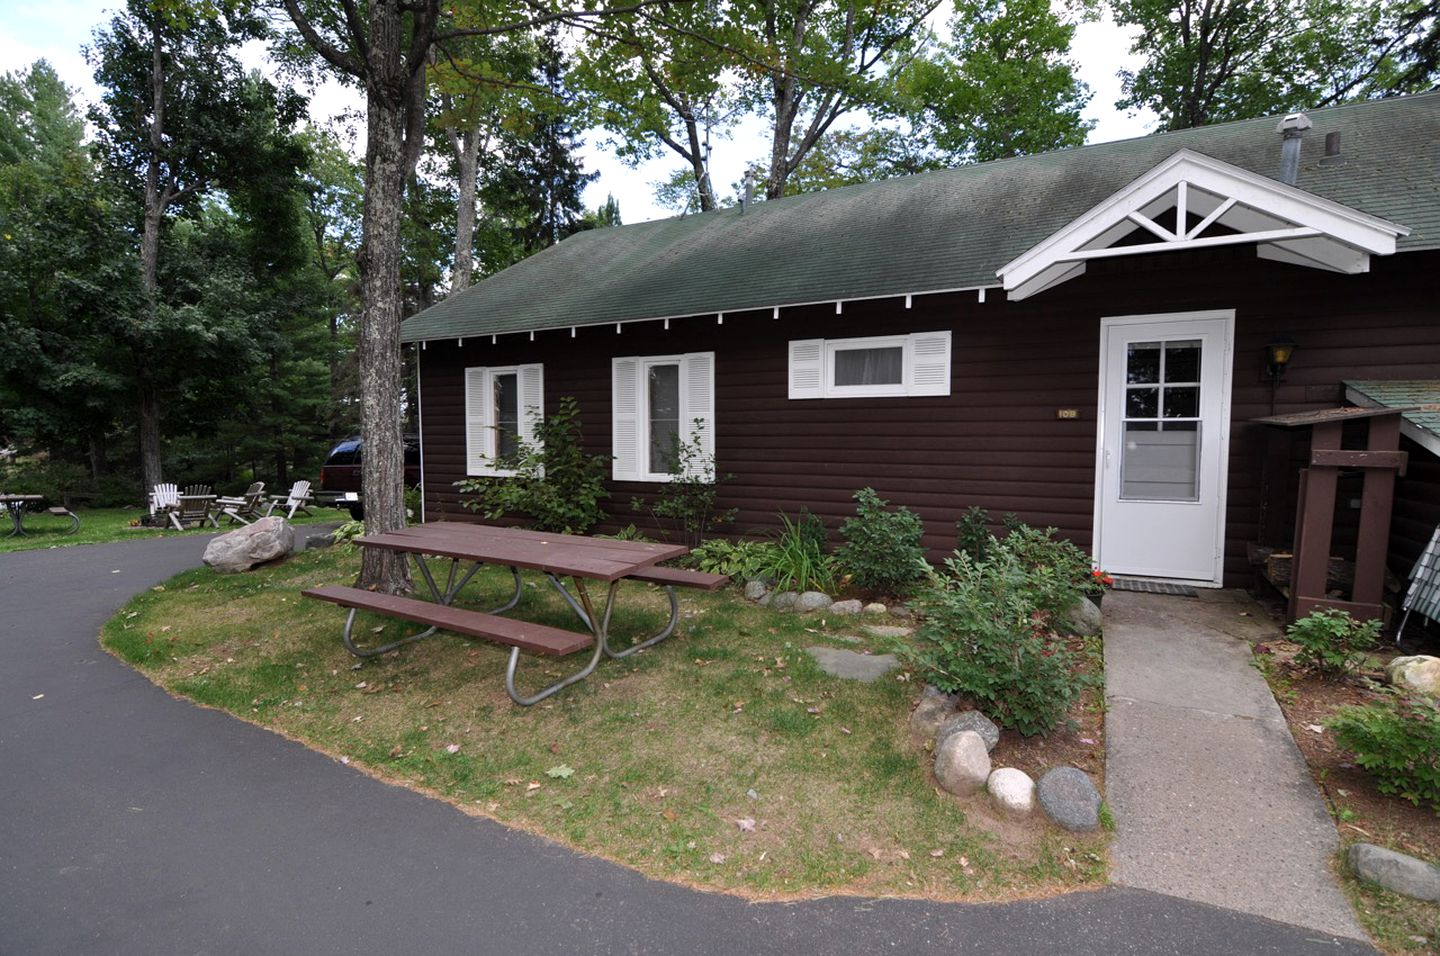 Cabins (Lac du Flambeau, Wisconsin, United States)